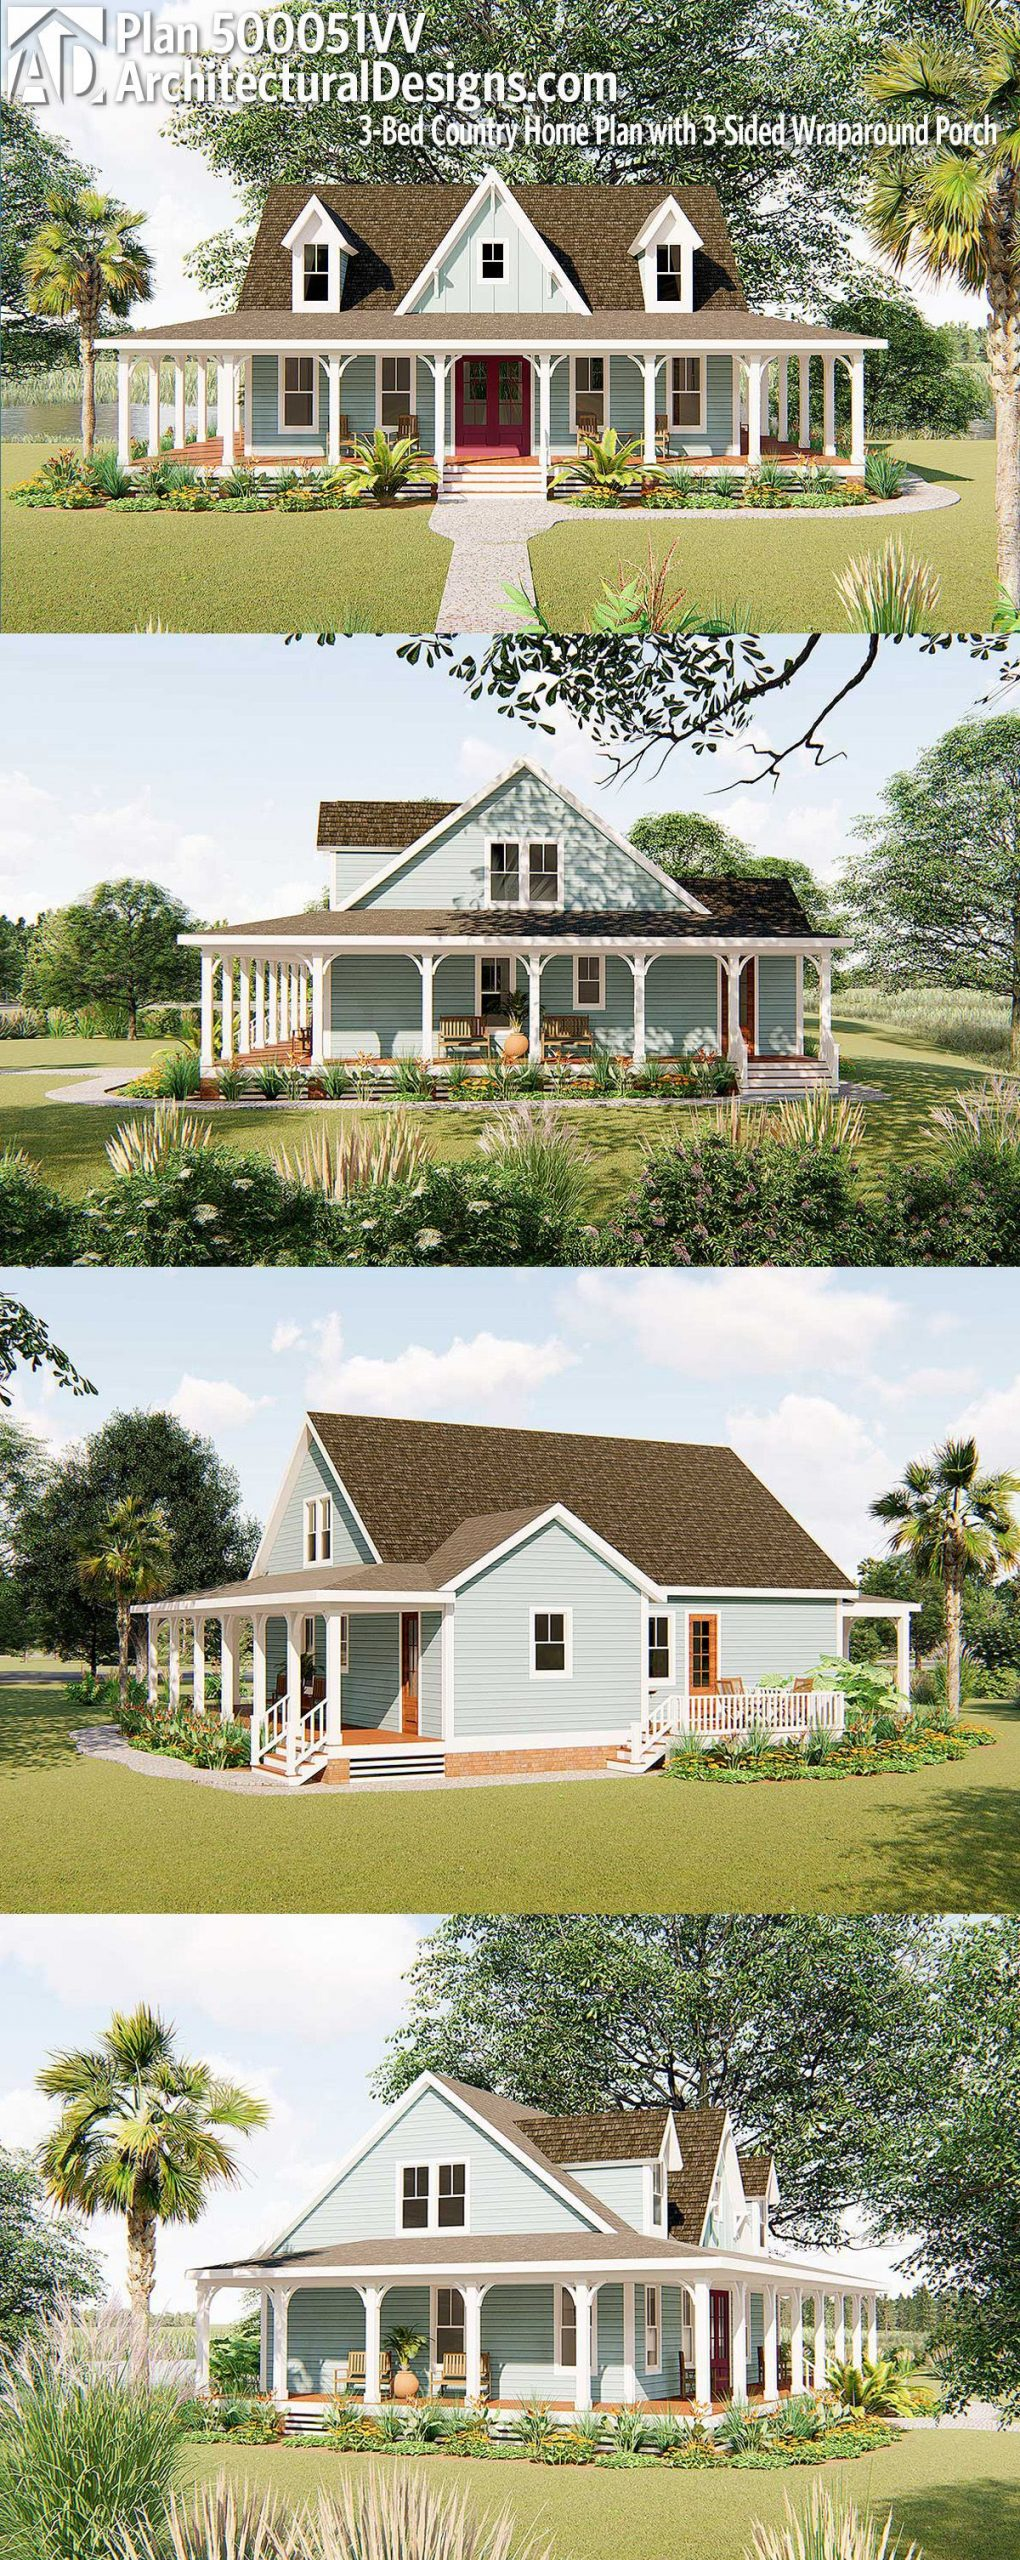 Plan 500051VV: 3-Bed Country Home Plan with 3-Sided Wraparound Porch